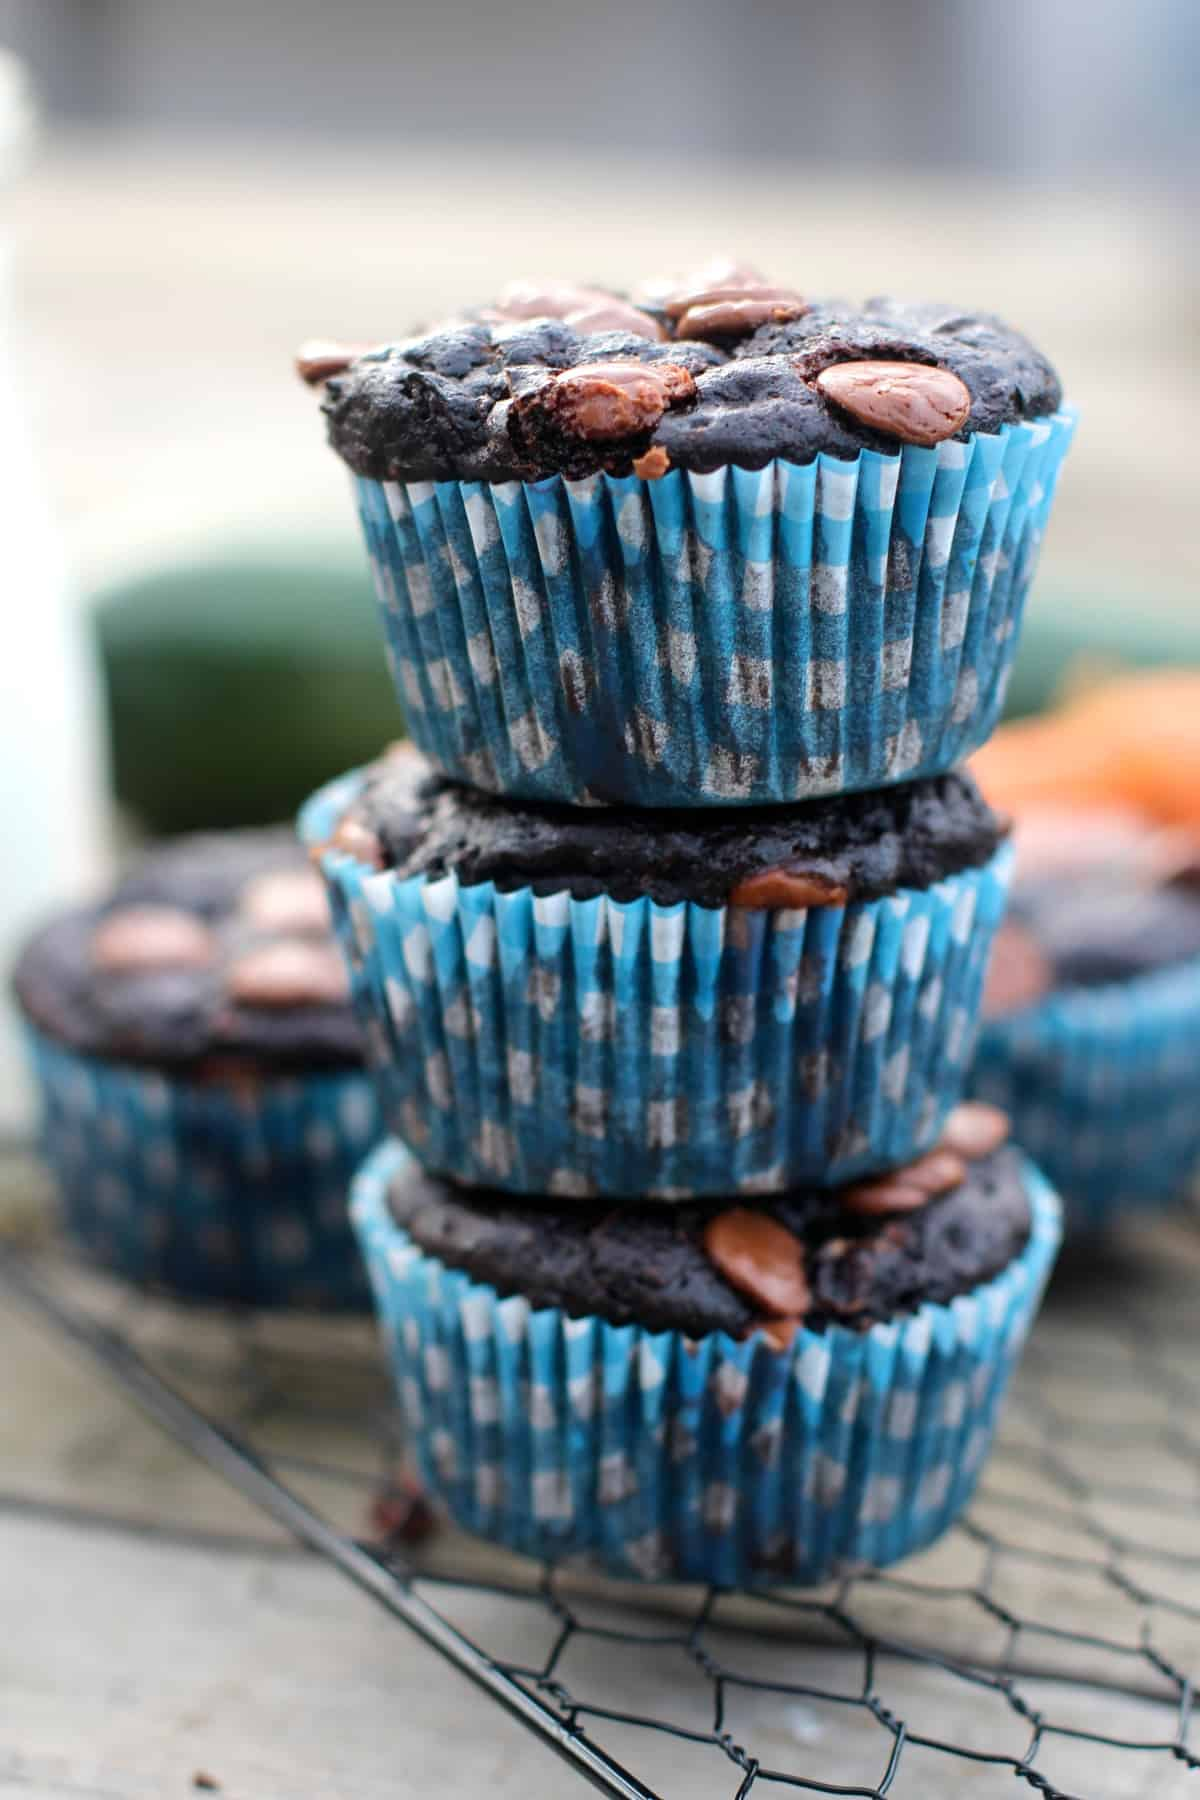 Decadent chocolate muffins studded with carrots and zucchini